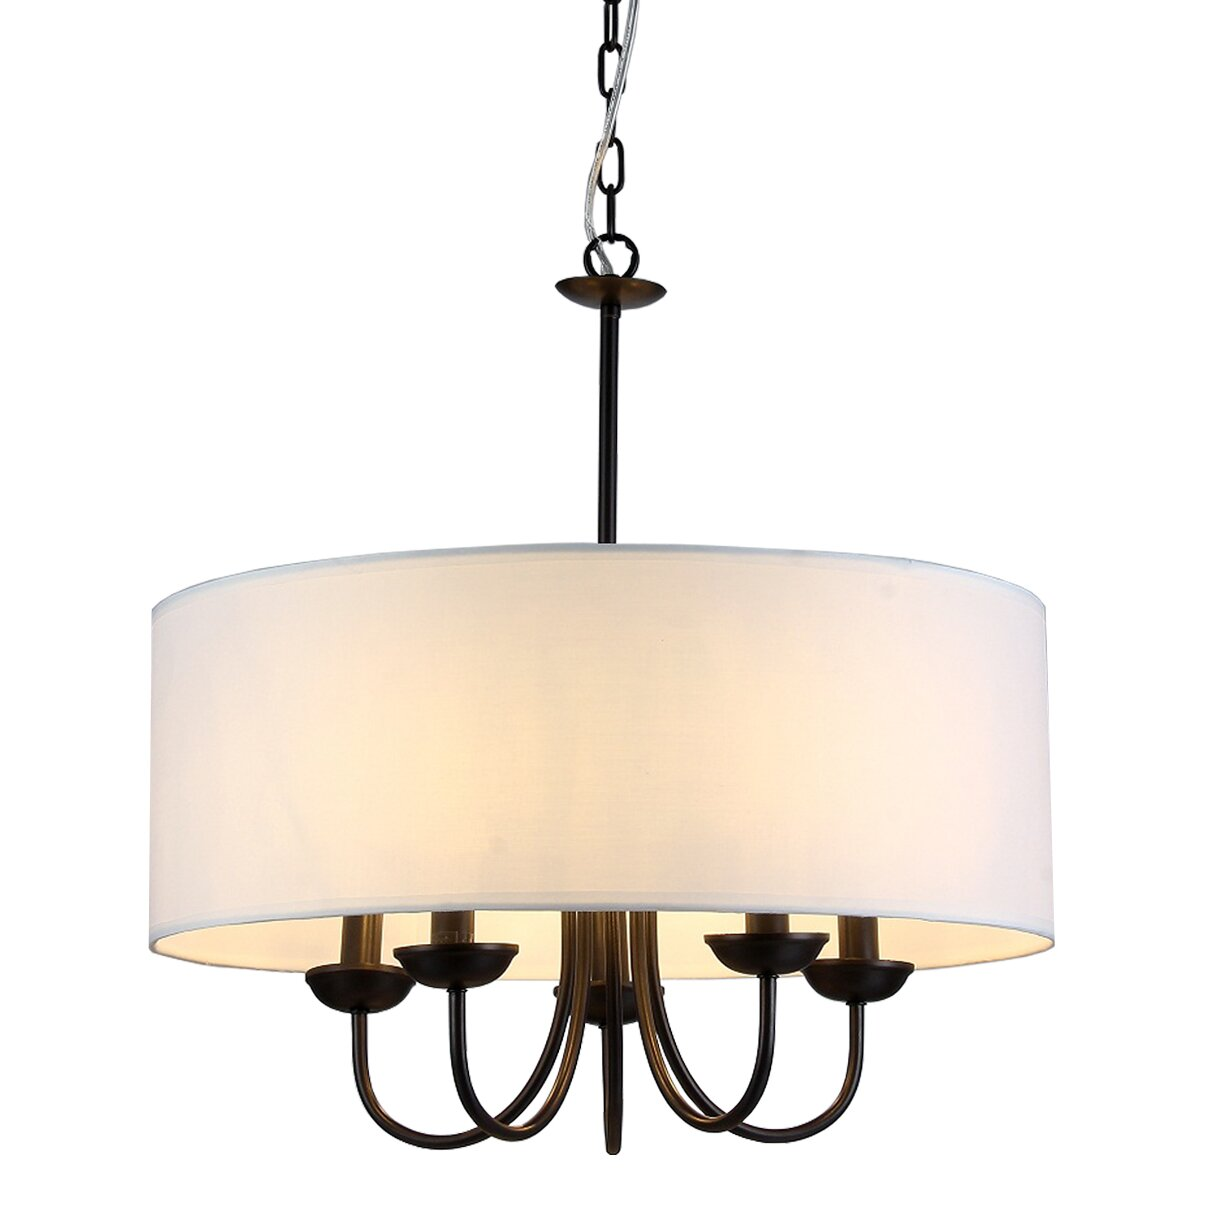 Warehouse of tiffany gwenevere 5 light drum chandelier wayfair - Lights and chandeliers ...